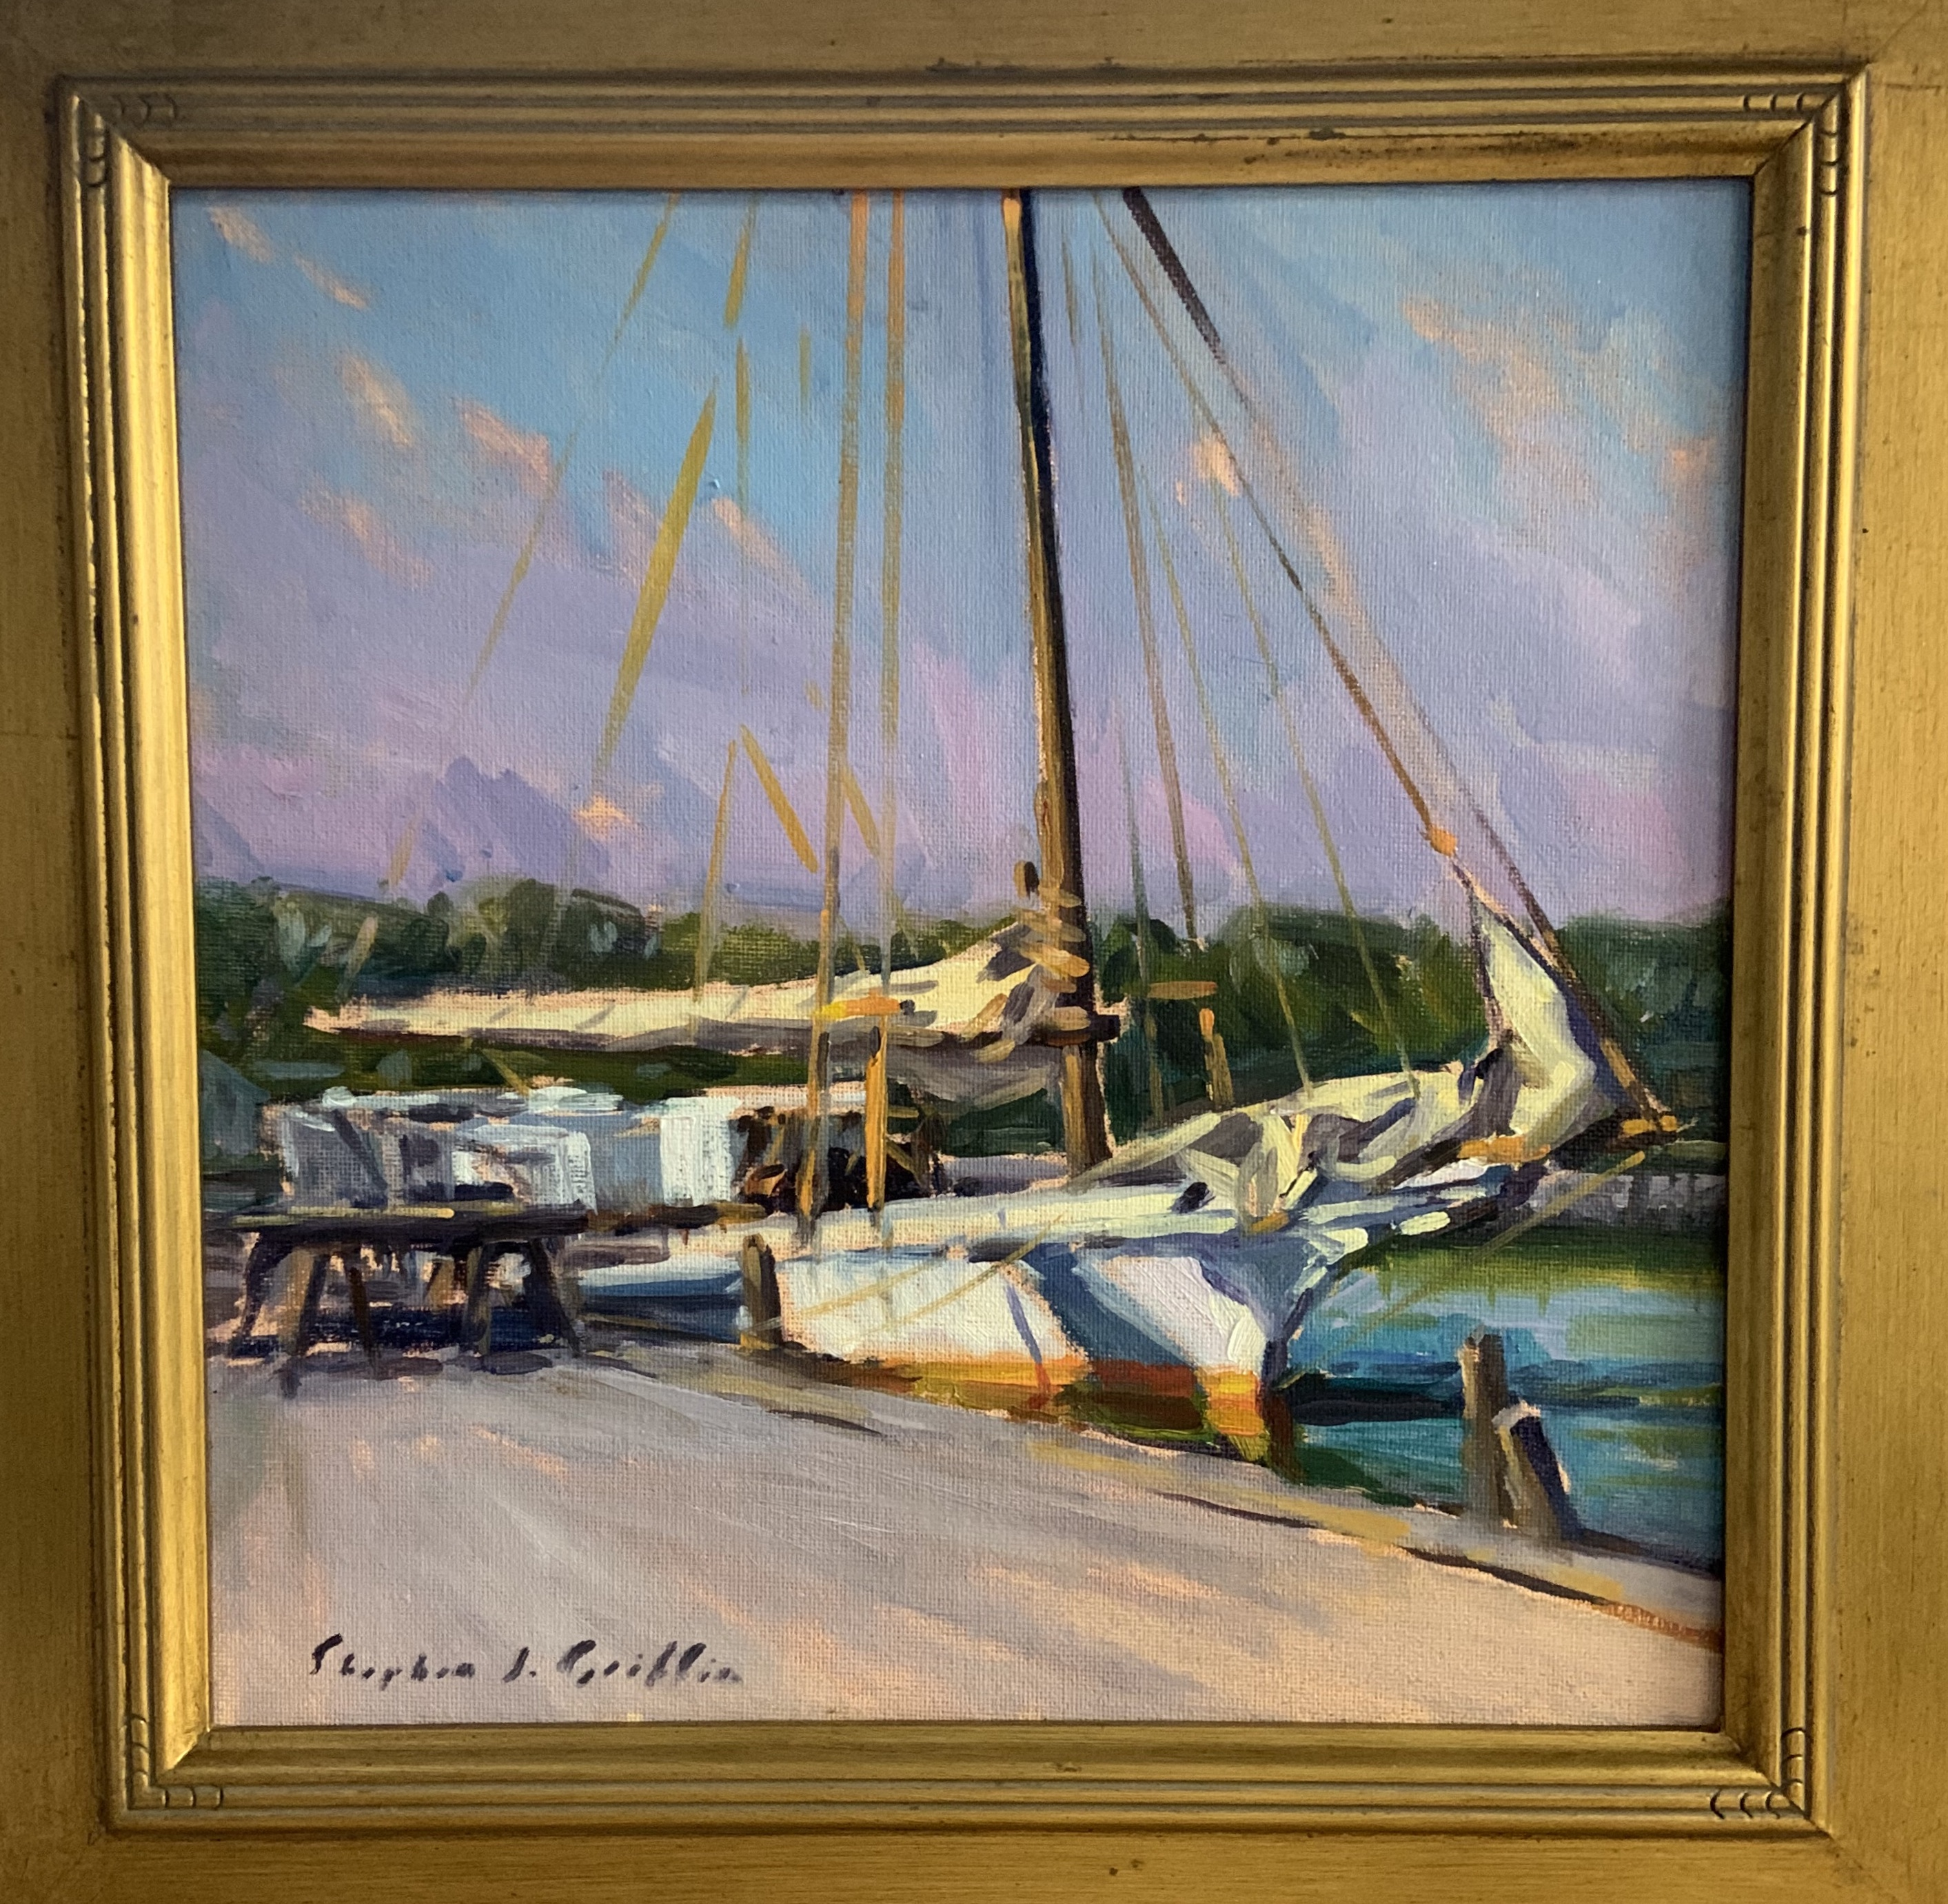 The Thomas Clyde, Tilghman-Griffin, oil 12x12 $900